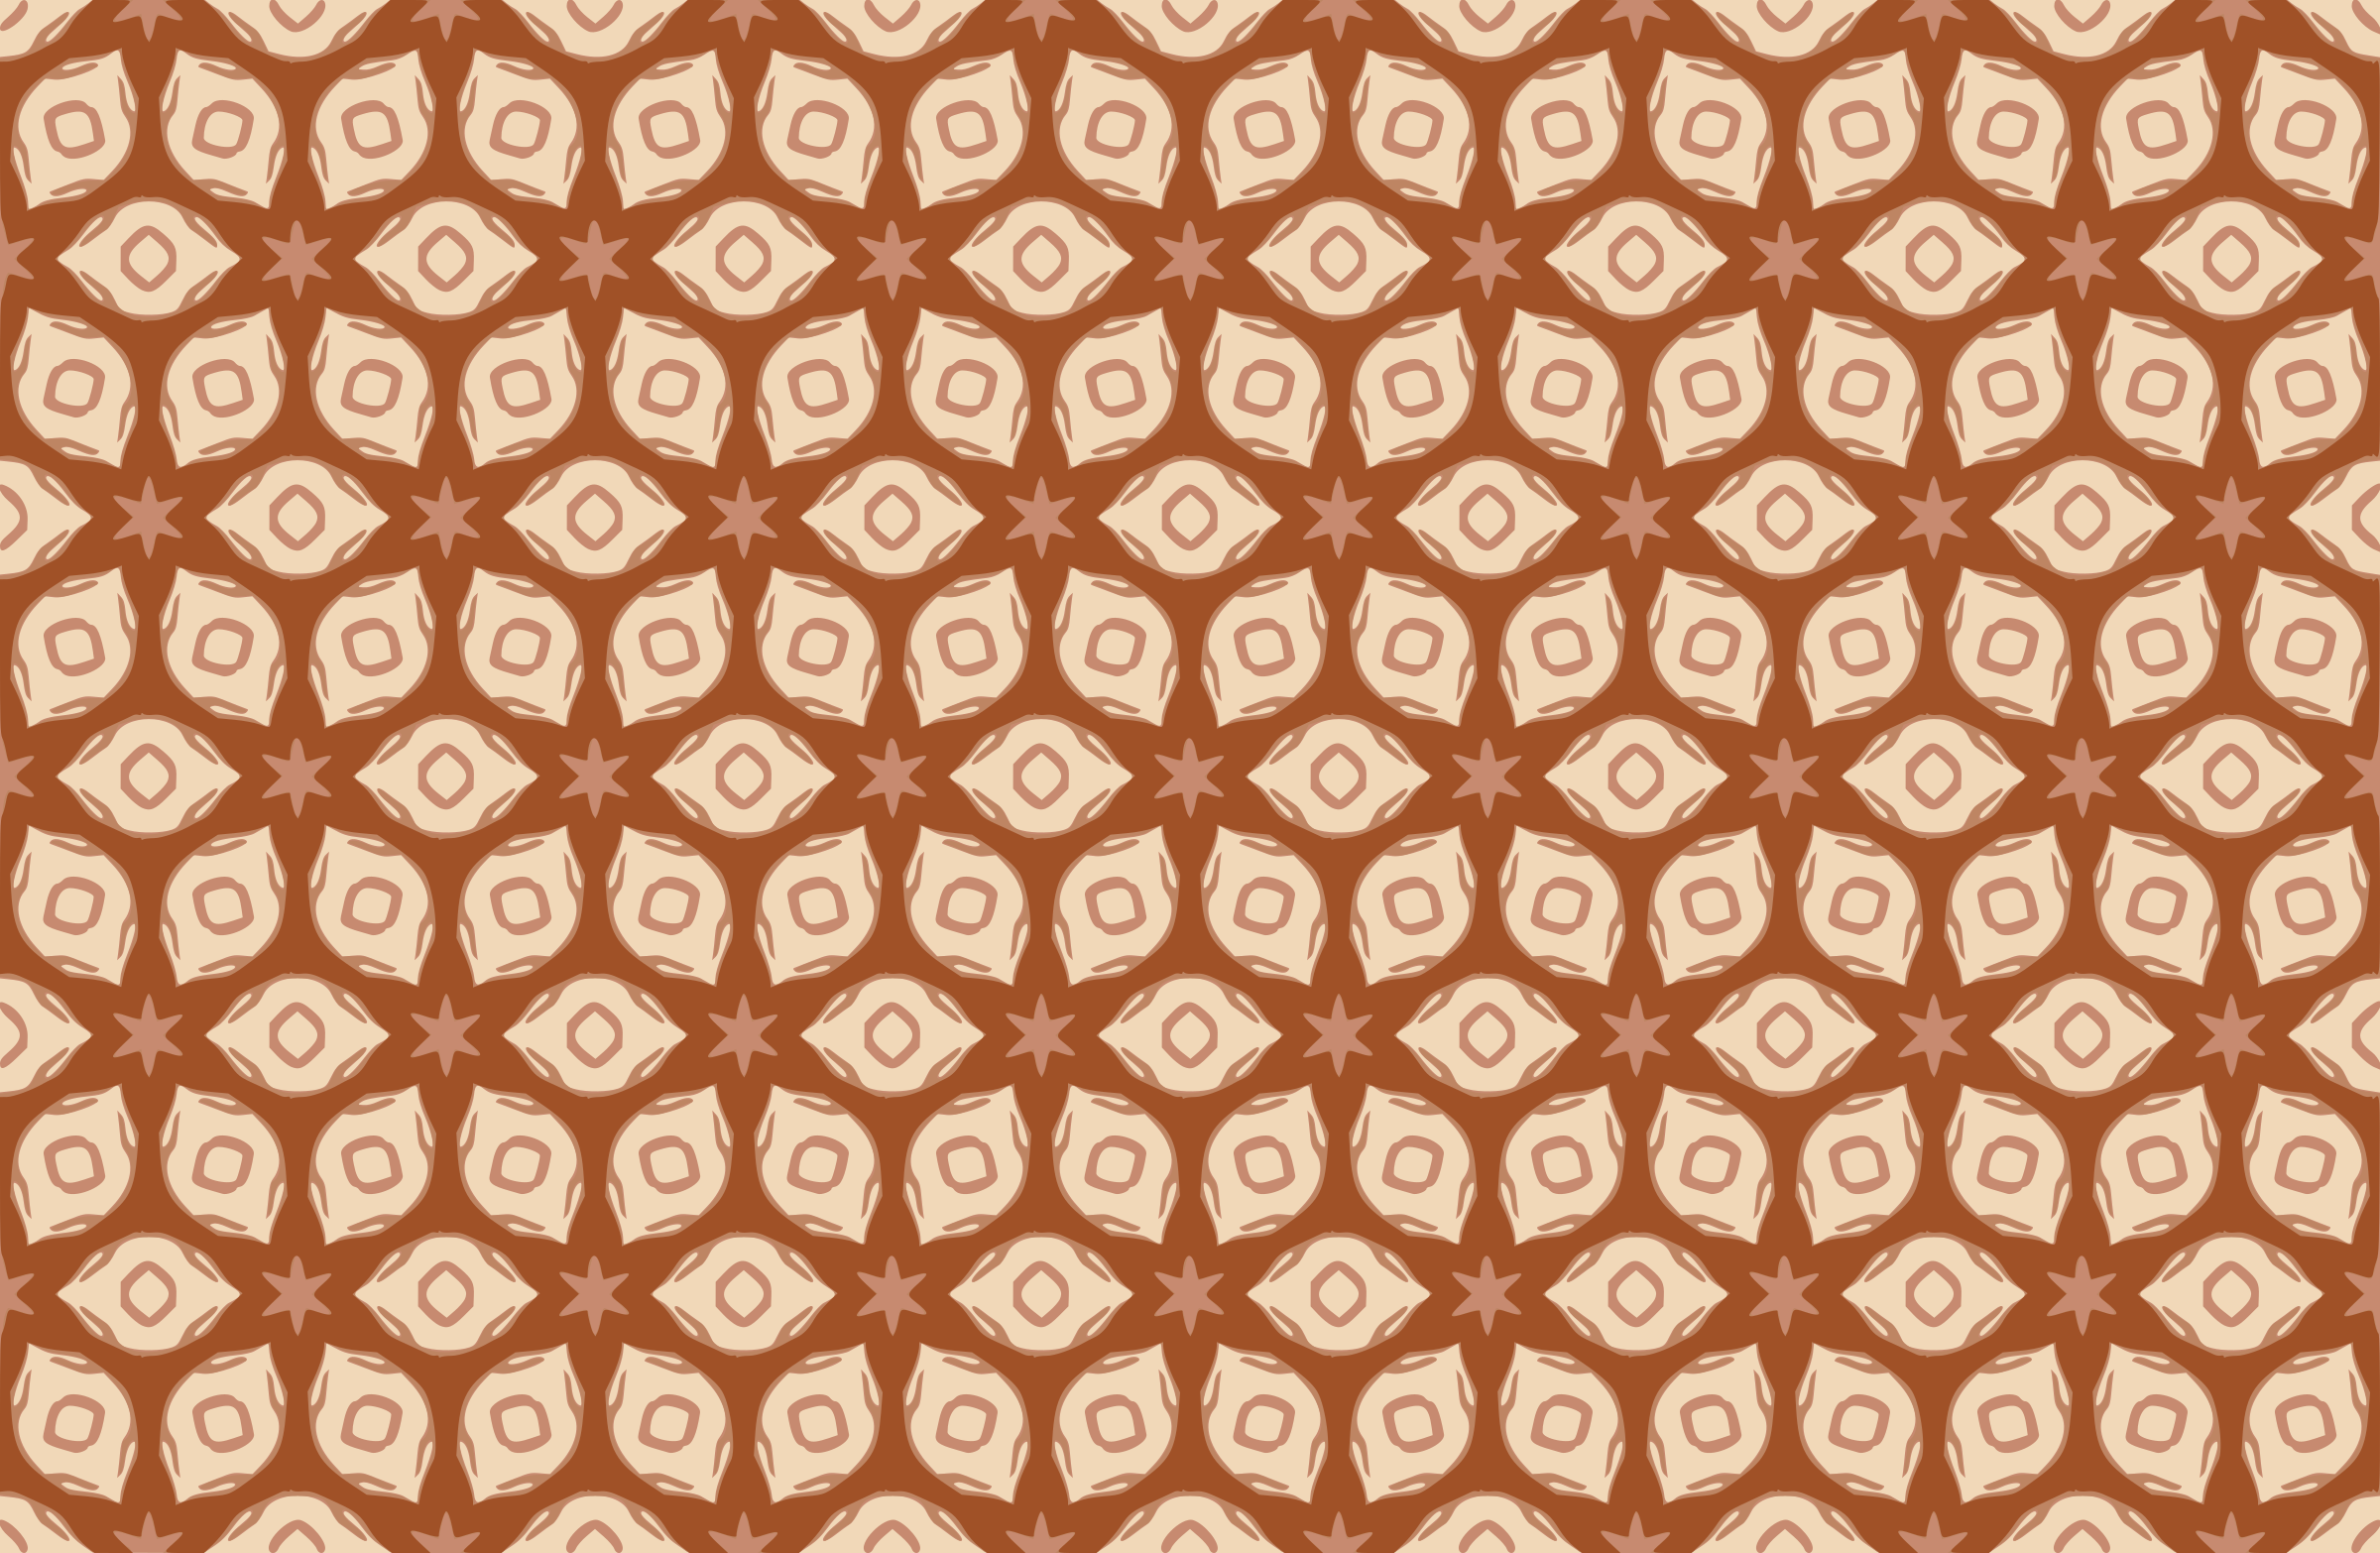 Background pattern 97 (reduced colour) by Firkin